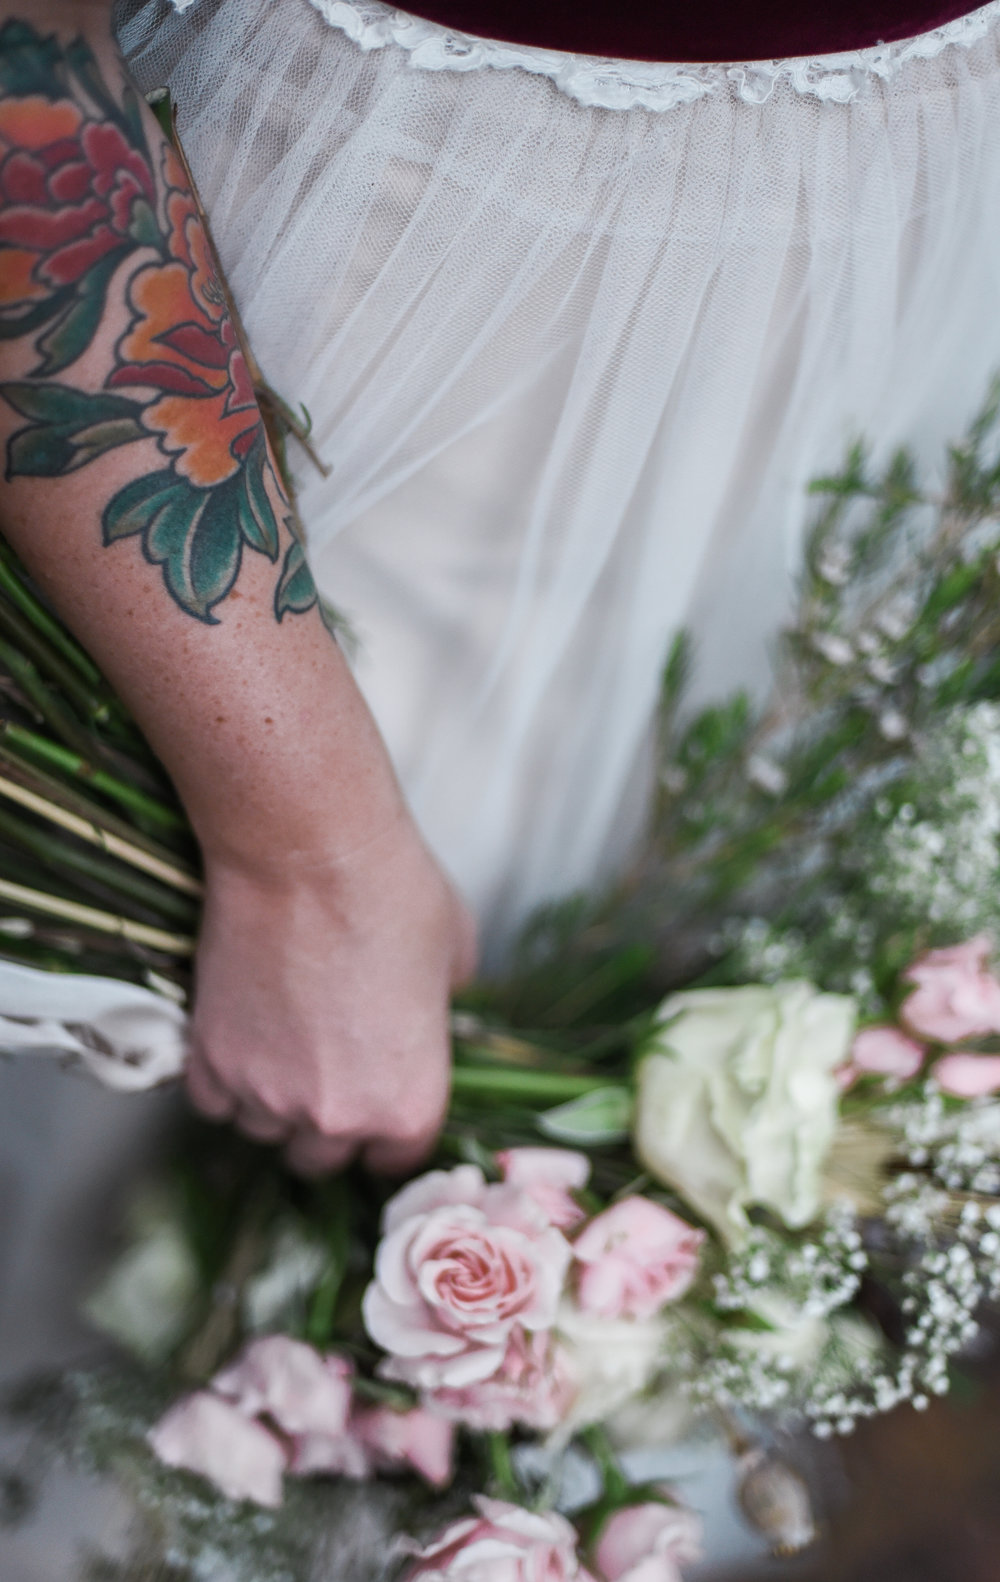 daniel-eastwood-photography-apt-b-photography-7553-ti-adora-ivory-and-beau-bridal-boutique-savannah-wedding-dresses-savannah-bridal-gowns-savannah-bridal-southern-bride-hilton-head-bridal-boho-bride-savannah-wedding-florist-savannah-wedding-planner-7.JPG